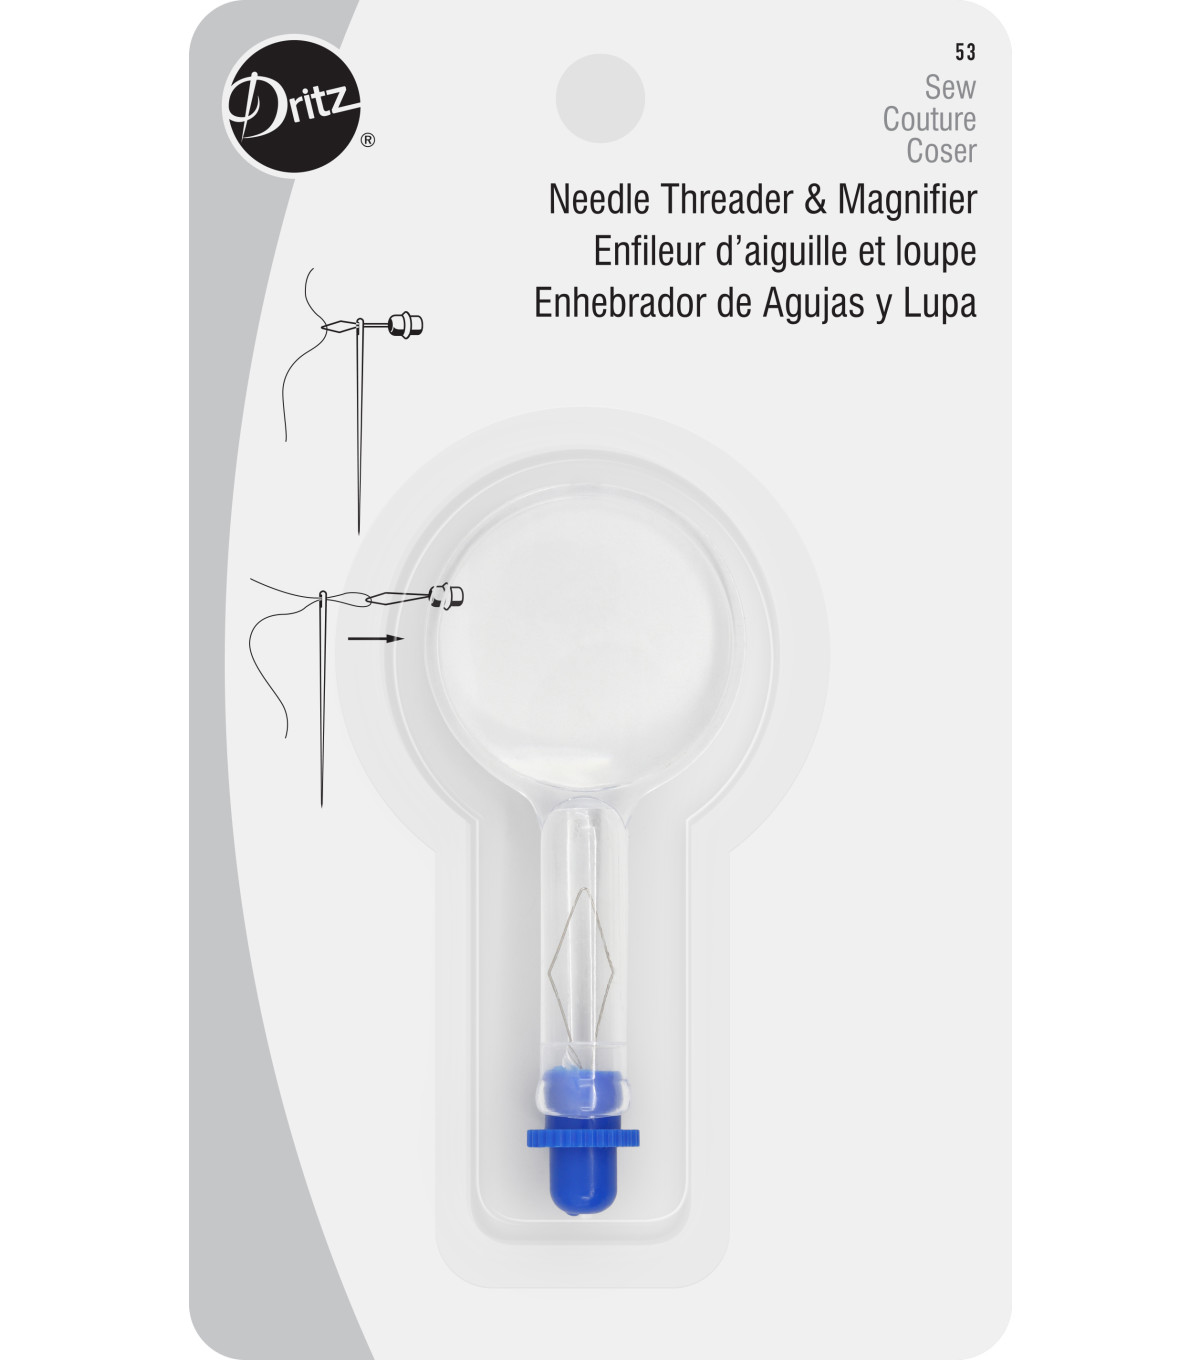 Dritz Needle Threader&Magnifier